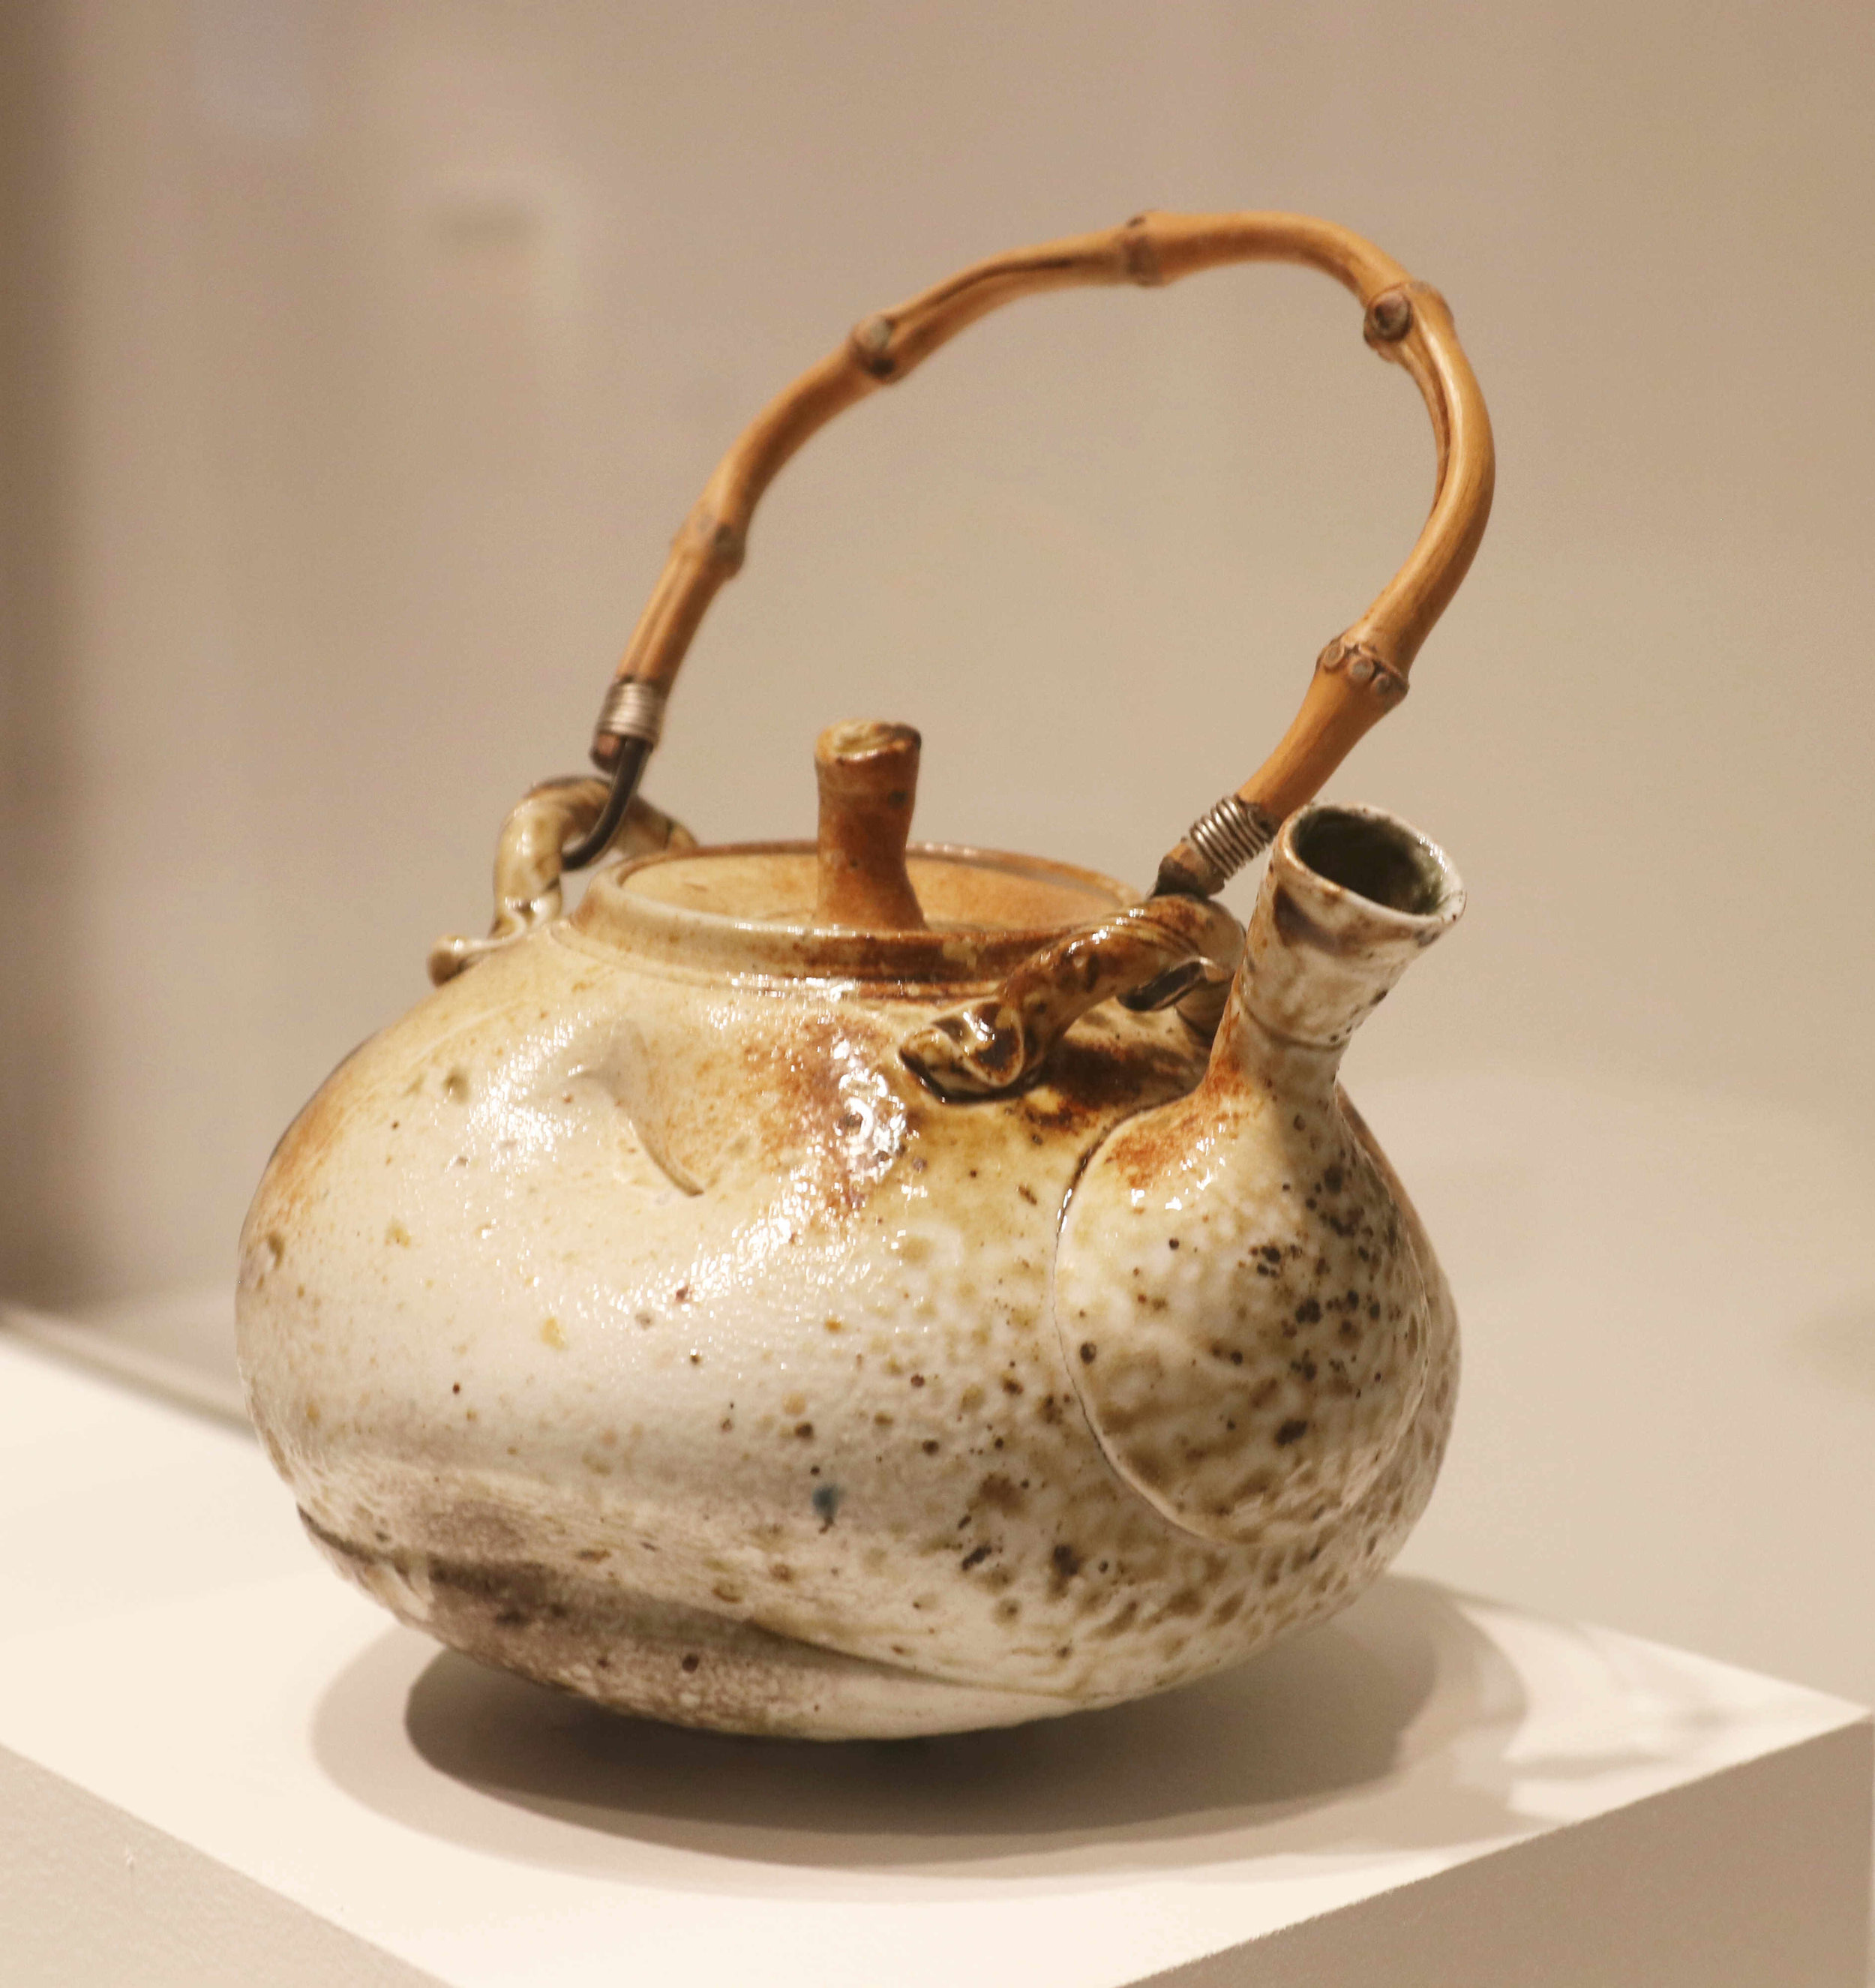 Michael Sherrill, Fire Box Tea (side view), 1968. Porcelain, ash glaze handle; silver, bamboo.